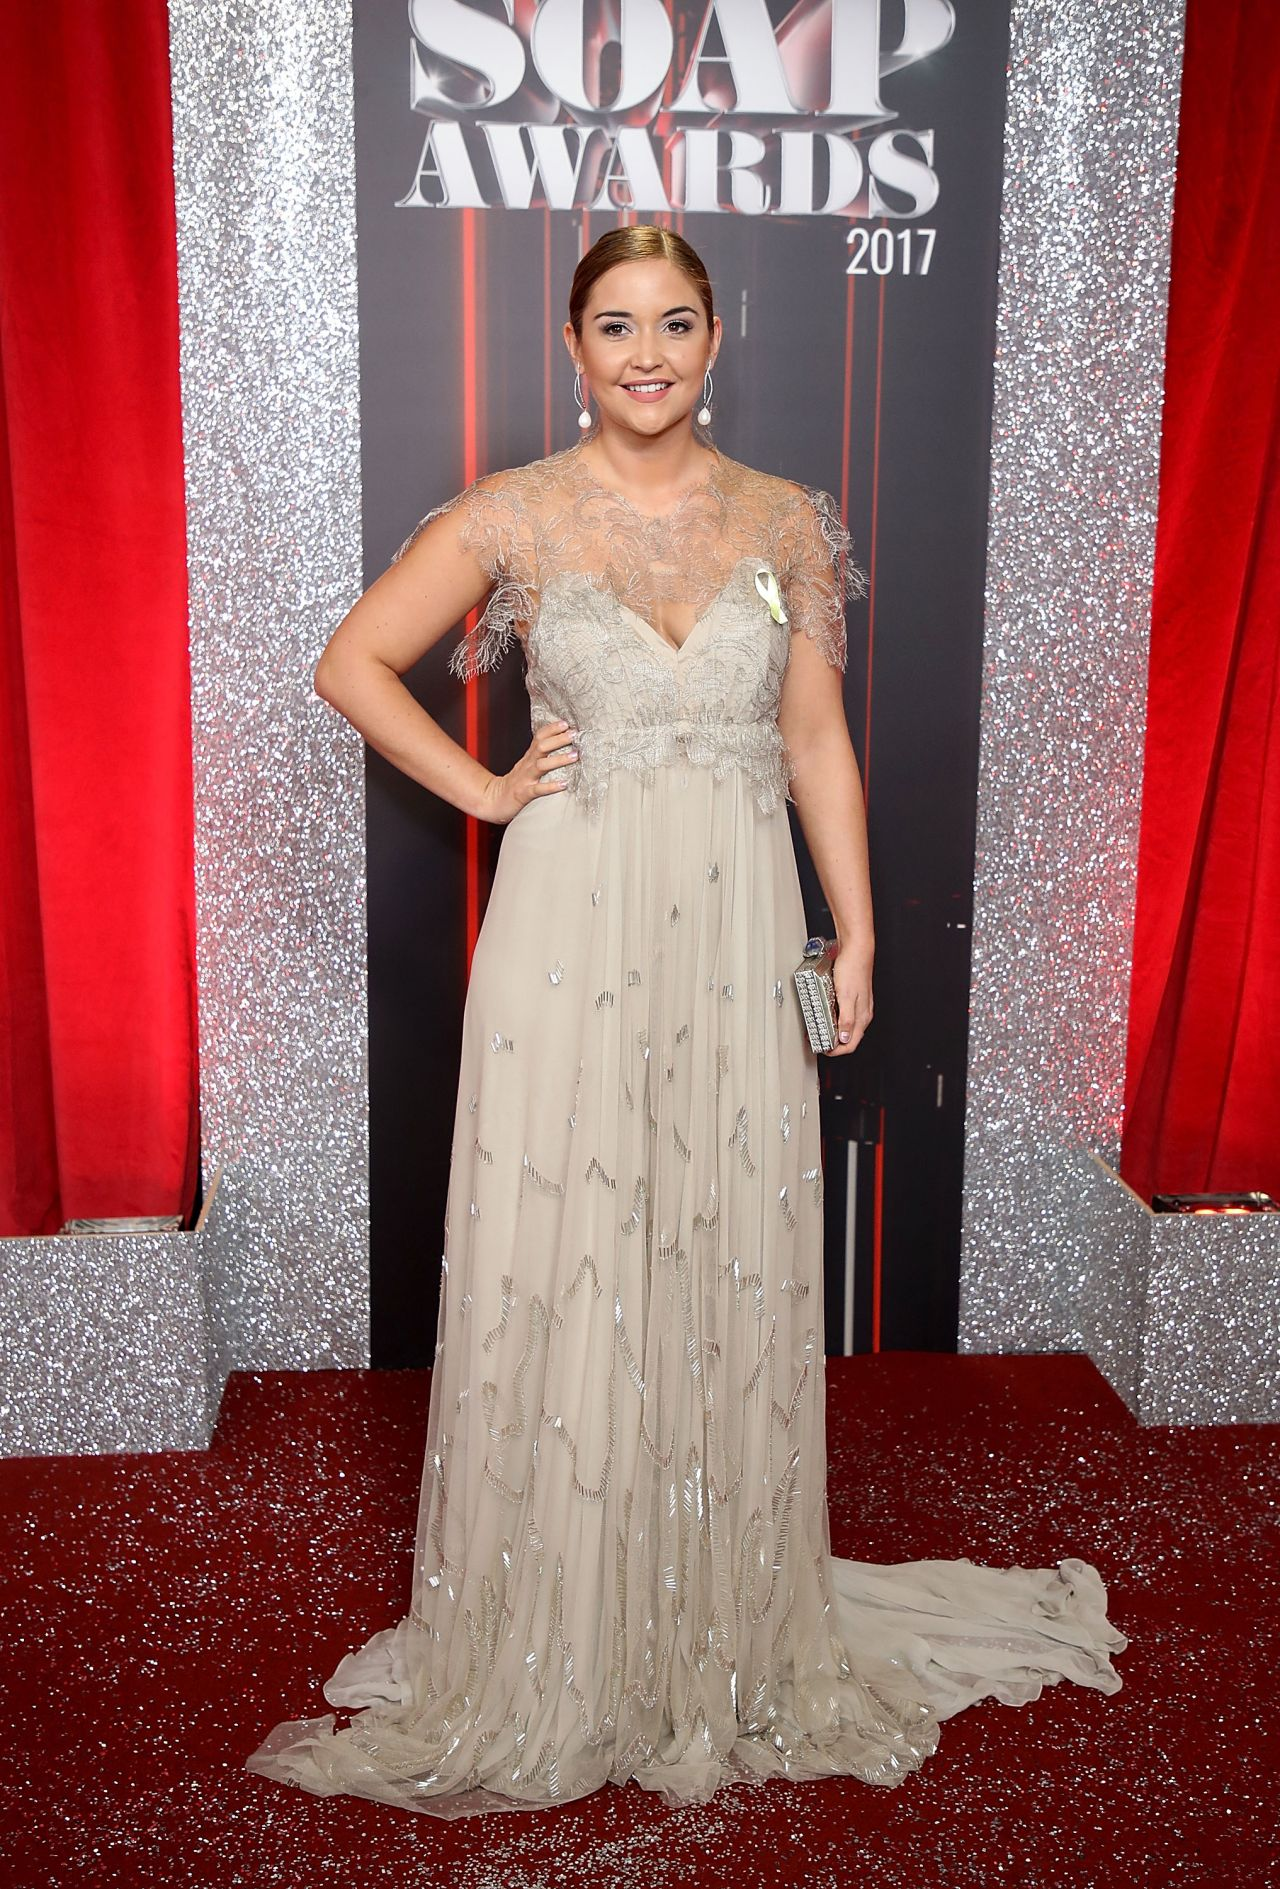 British Soap Awards In Manchester, UK